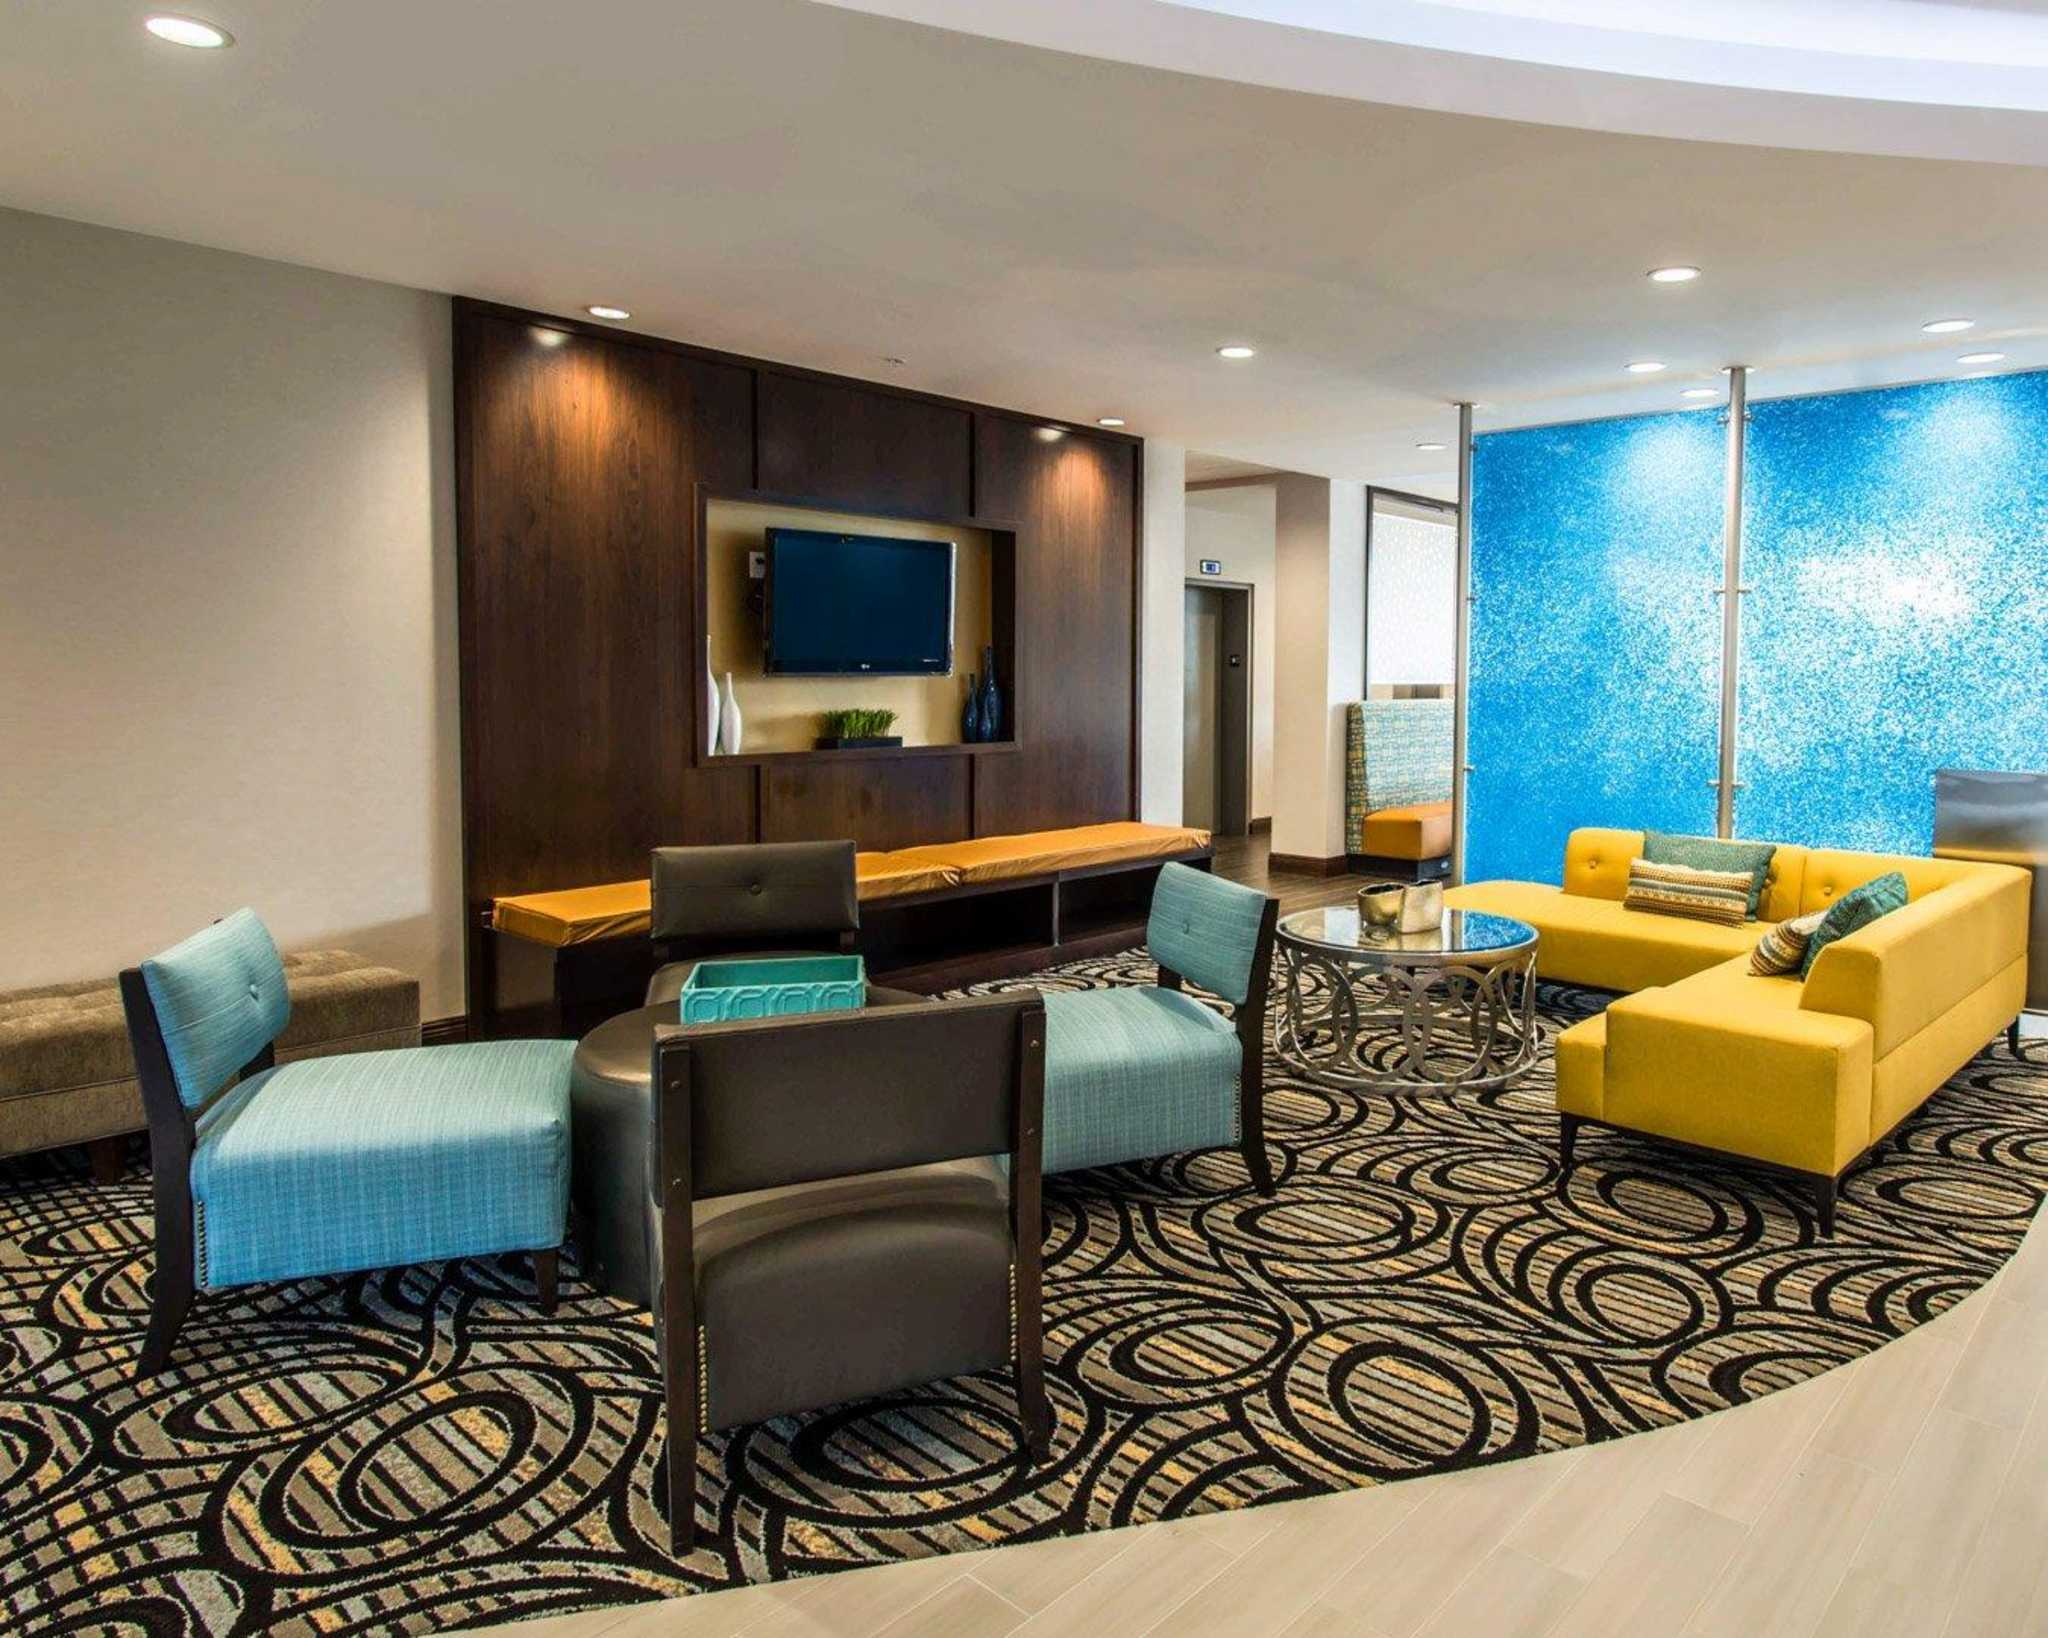 Comfort Suites Fort Lauderdale Airport South & Cruise Port image 30